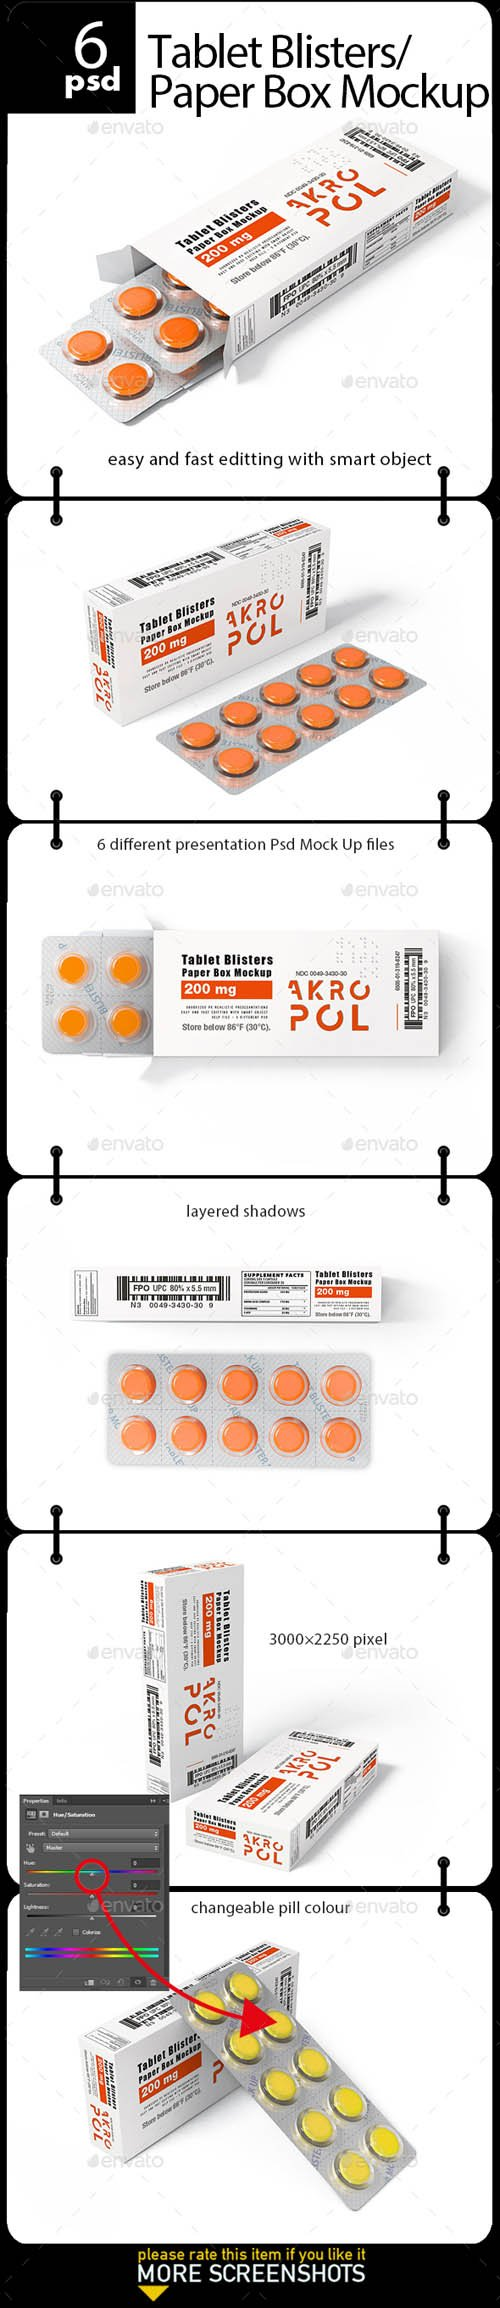 Tablet Blisters/ Paper Box Mockup 20332727